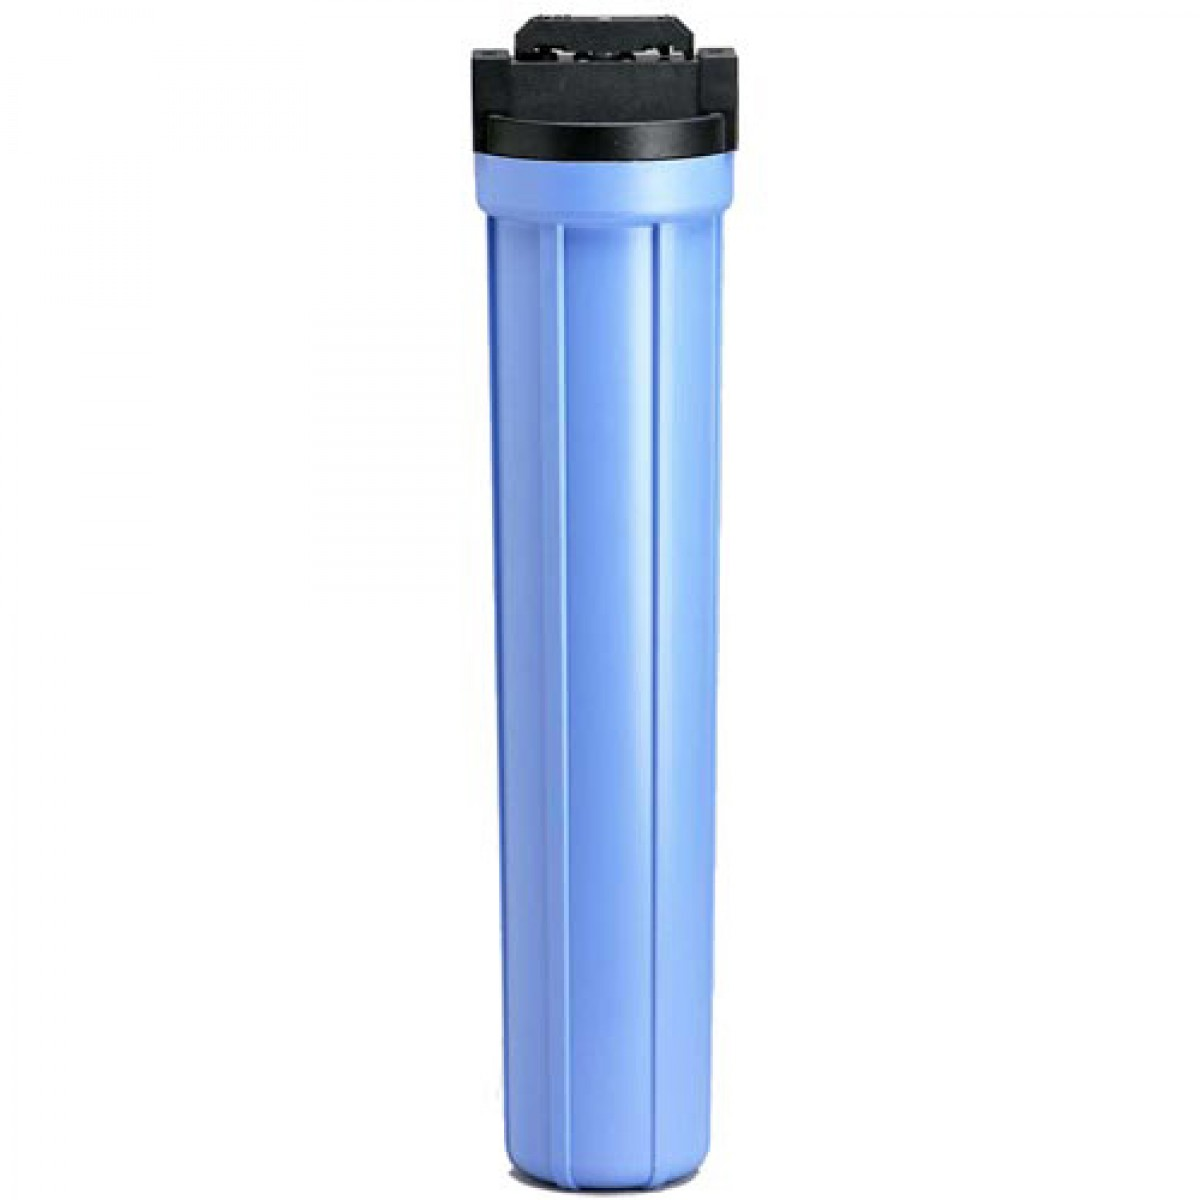 Pentek 150166 Whole House Water Filter System